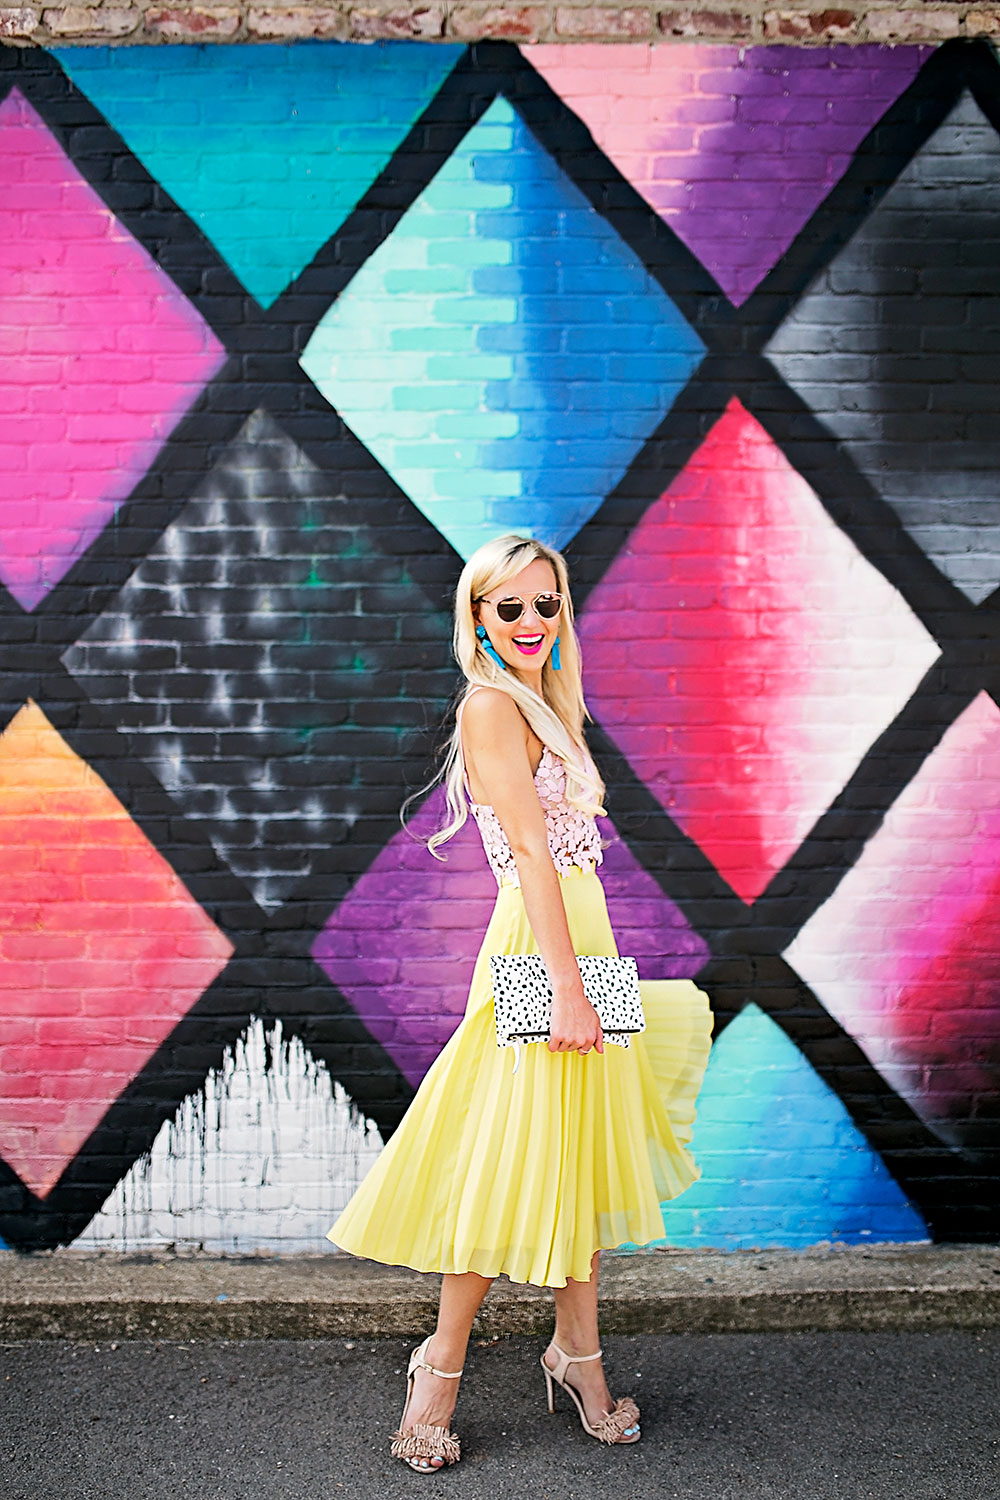 vandi-fair-dallas-fashion-blog-lauren-vandiver-southern-texas-travel-blogger-color-colorful-nordstrom-topshop-chiffon-pleated-midi-skirt-neon-yellow-bardot-flora-lace-crop-top-1